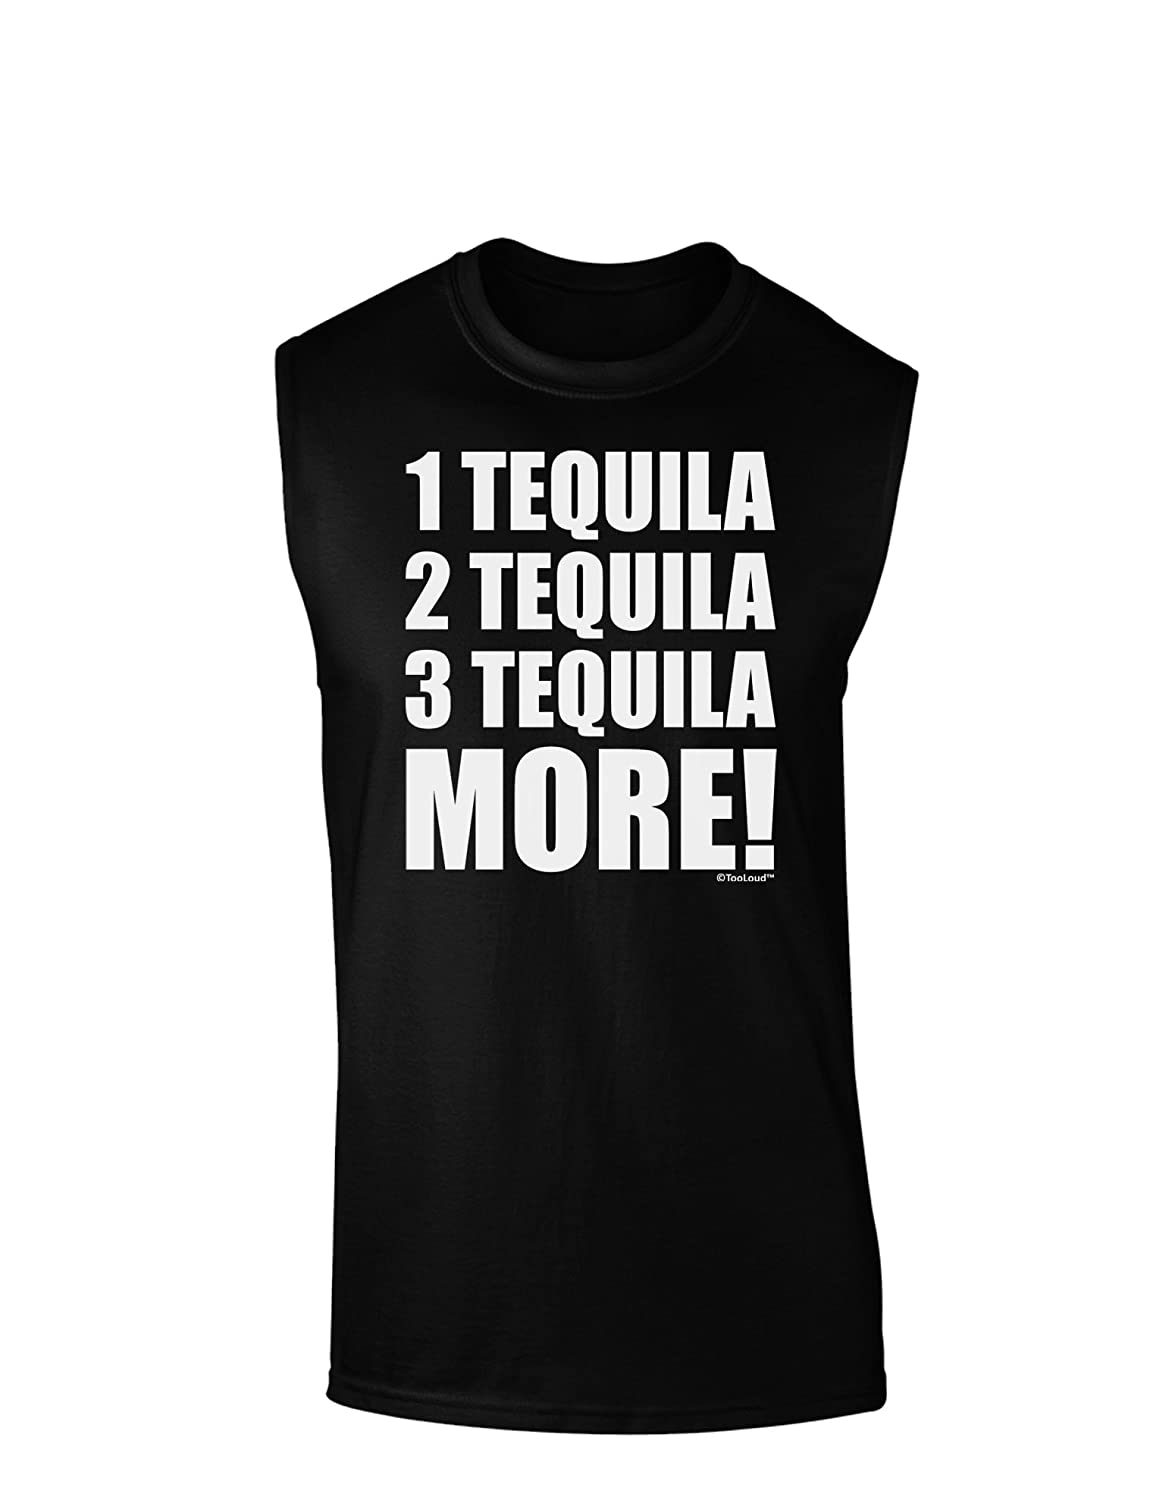 TooLoud 1 Tequila 2 Tequila 3 Tequila More Dark Muscle Shirt